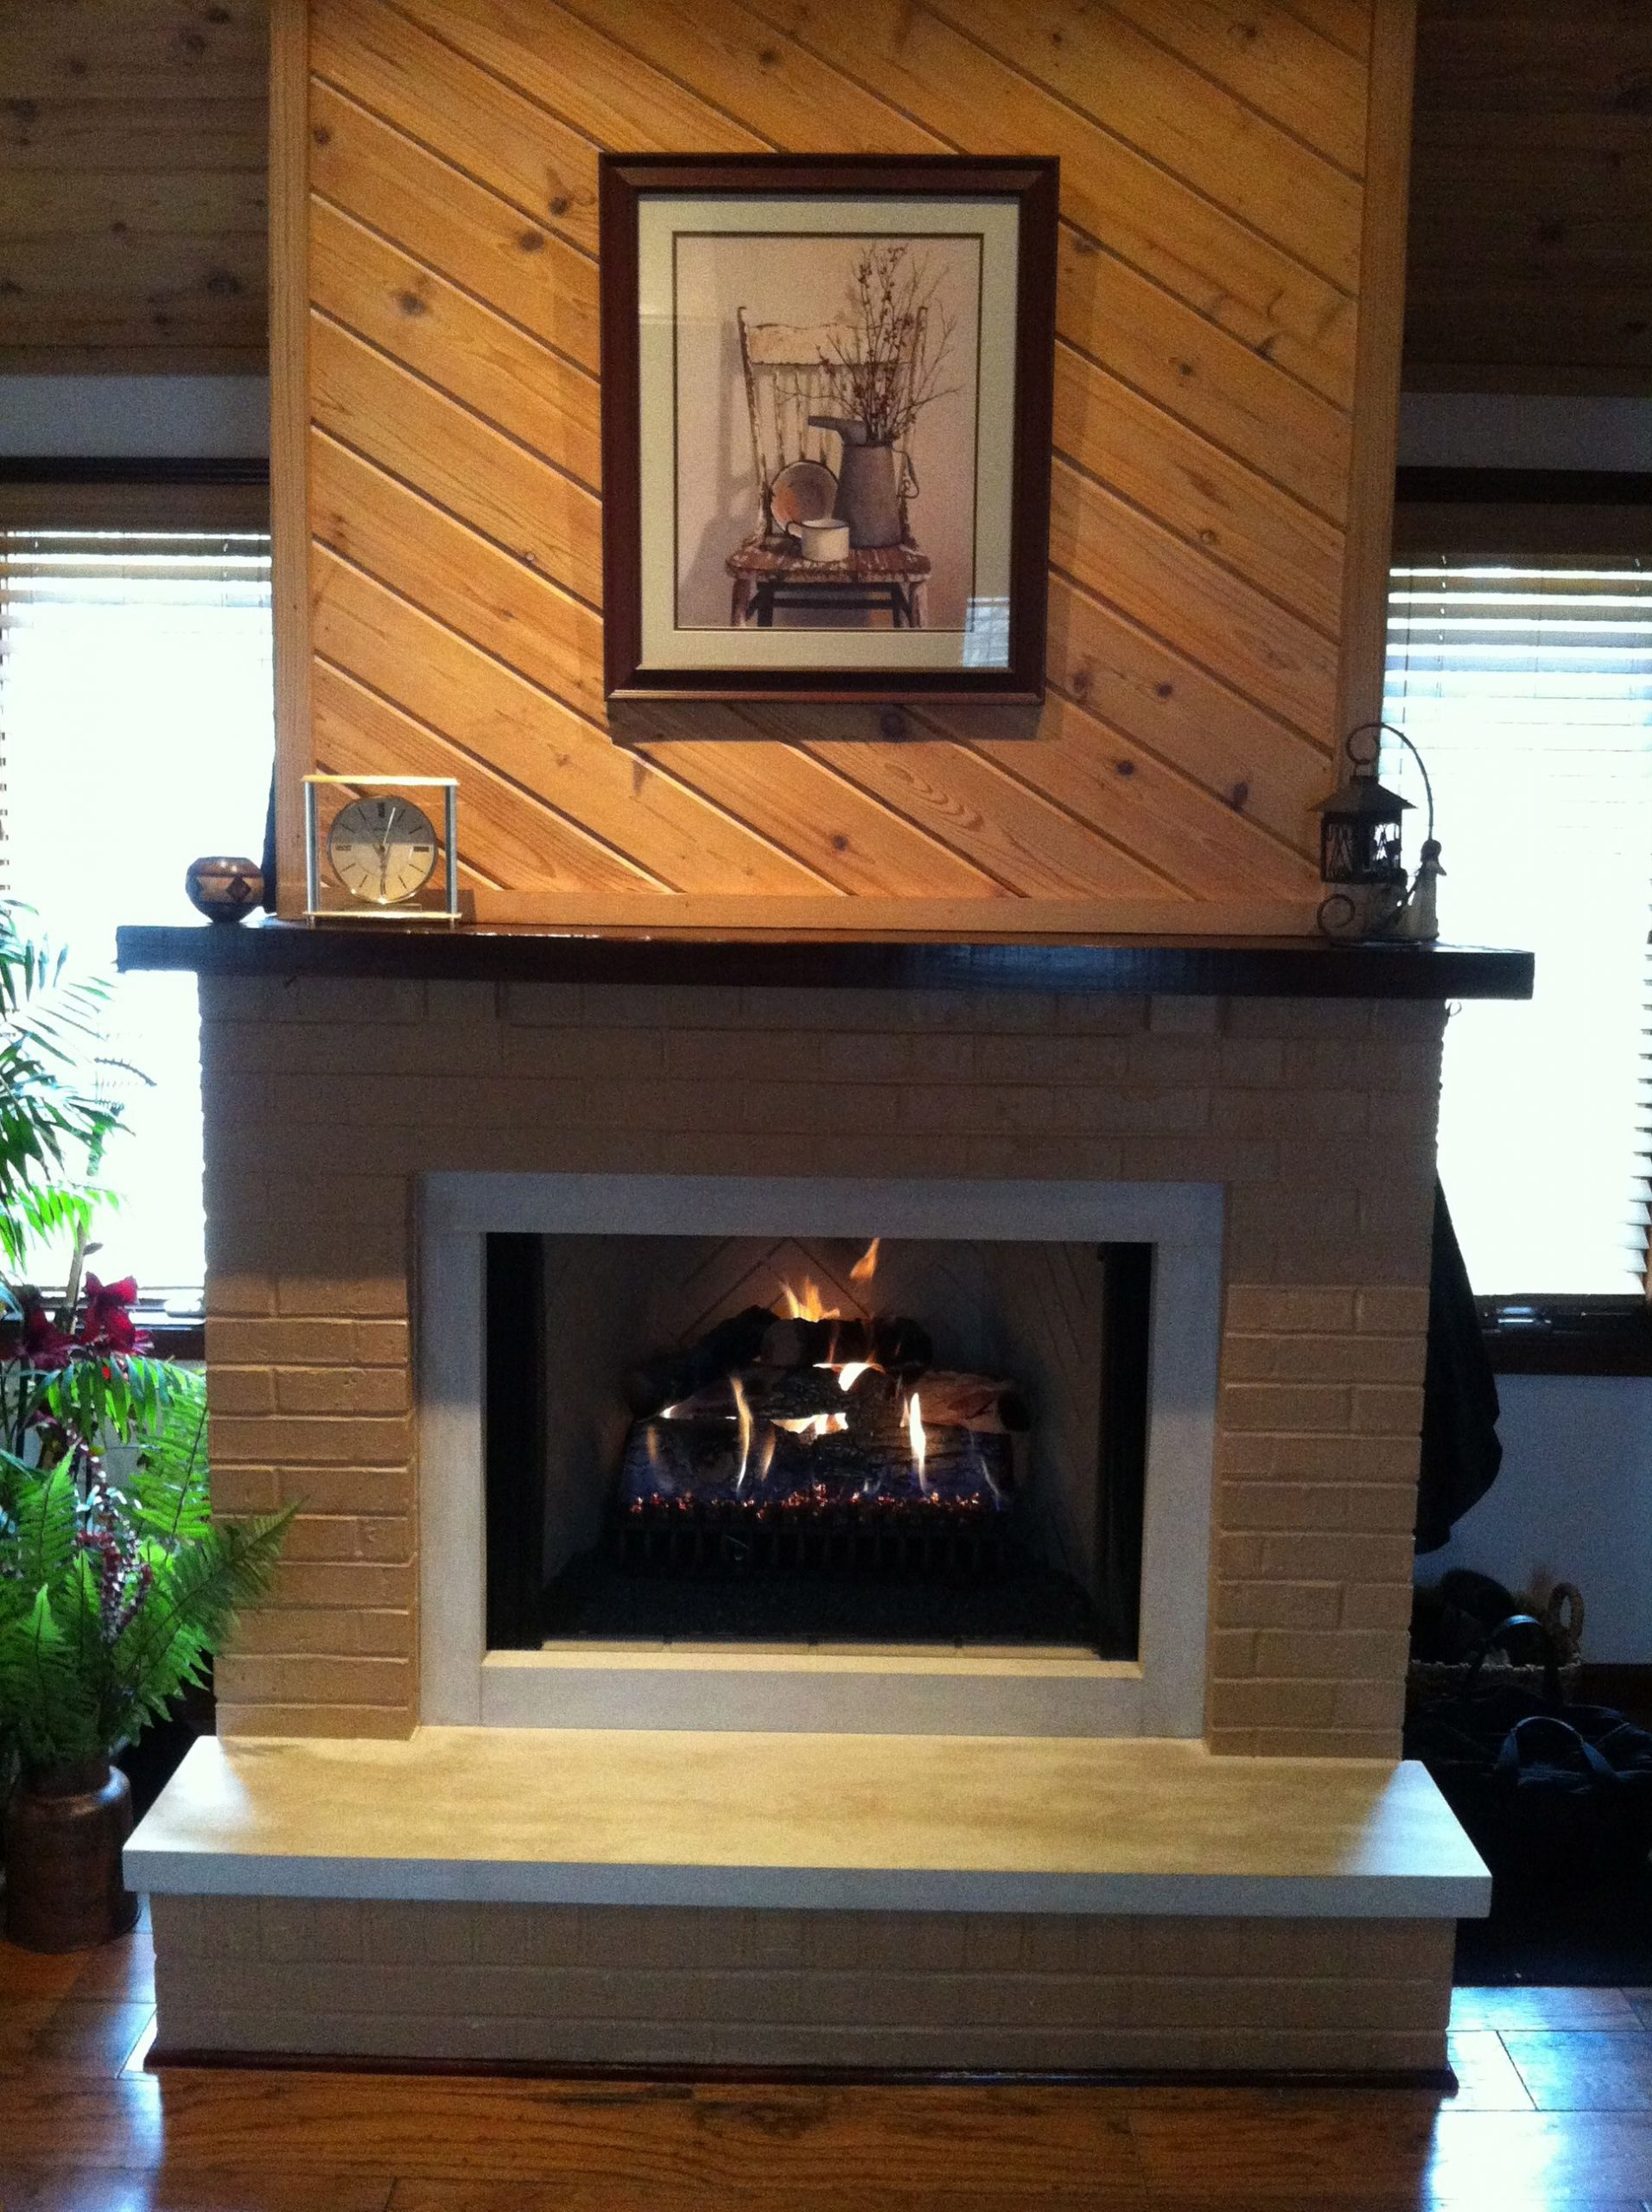 Rasmussen Fireplace Beautiful Rasmussen Gas Logs Rebuilt Firebox W Limestone Raised Hearth